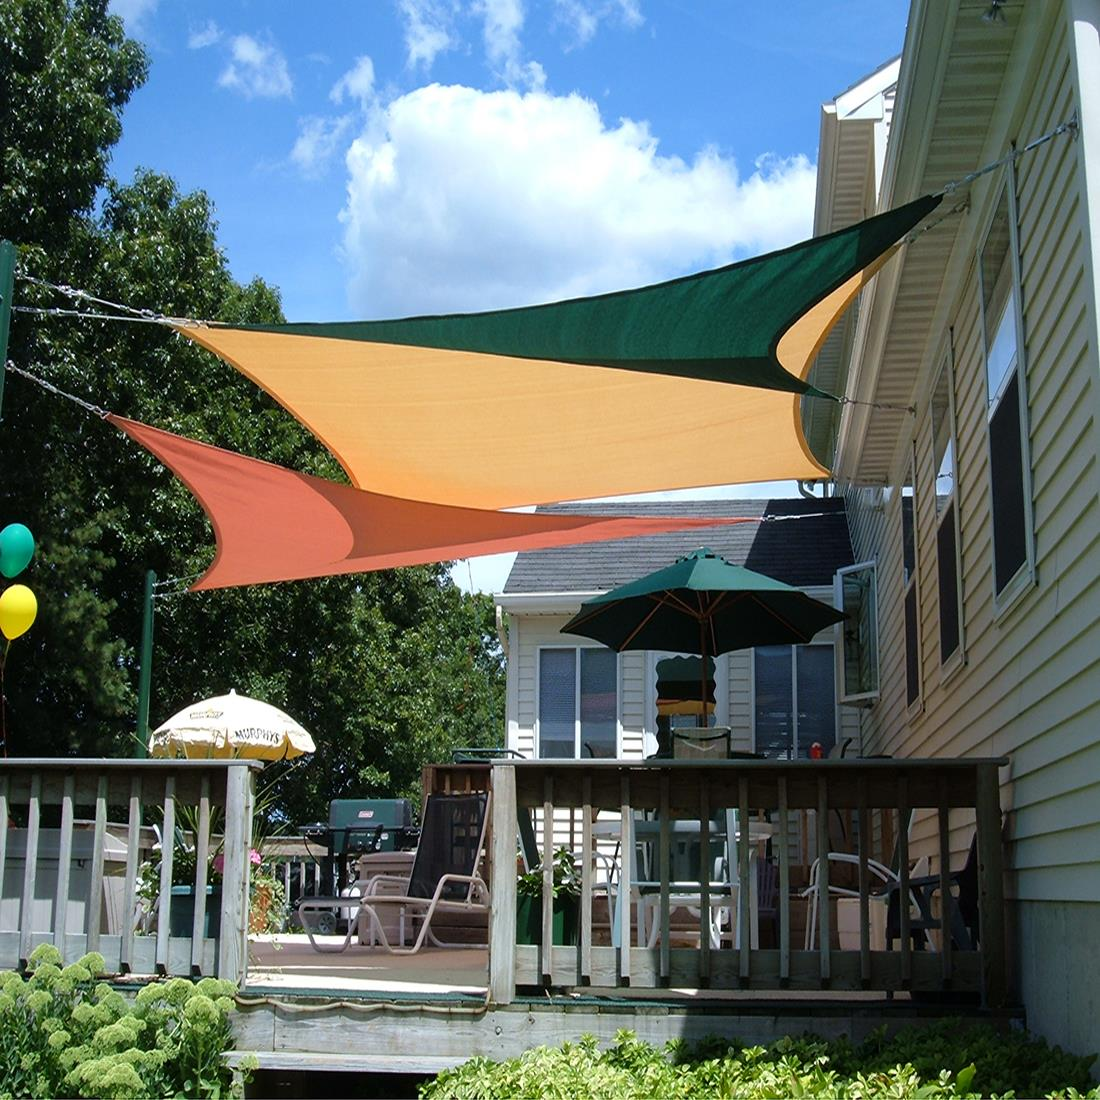 Picture 11 of 19; Picture 12 of 19 & Quictent 12/18/20 FT Triangle Sun Shade Sail Patio Pool Top Canopy ...